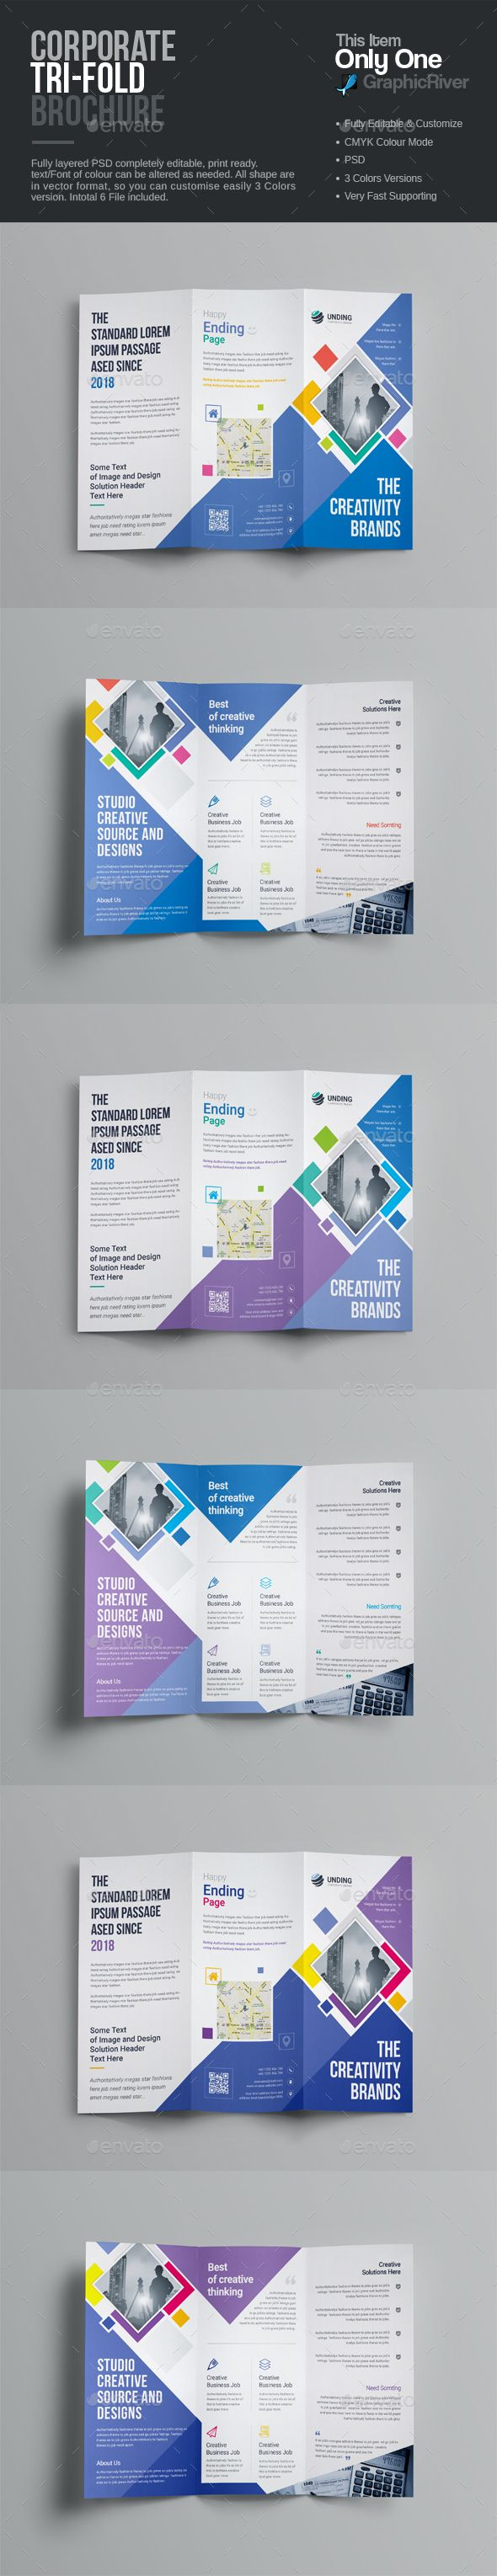 TriFold Brochure — Photoshop PSD #badges & stickers #Custom Print • Download ➝ https://graphicriver.net/item/trifold-brochure/20187781?ref=pxcr